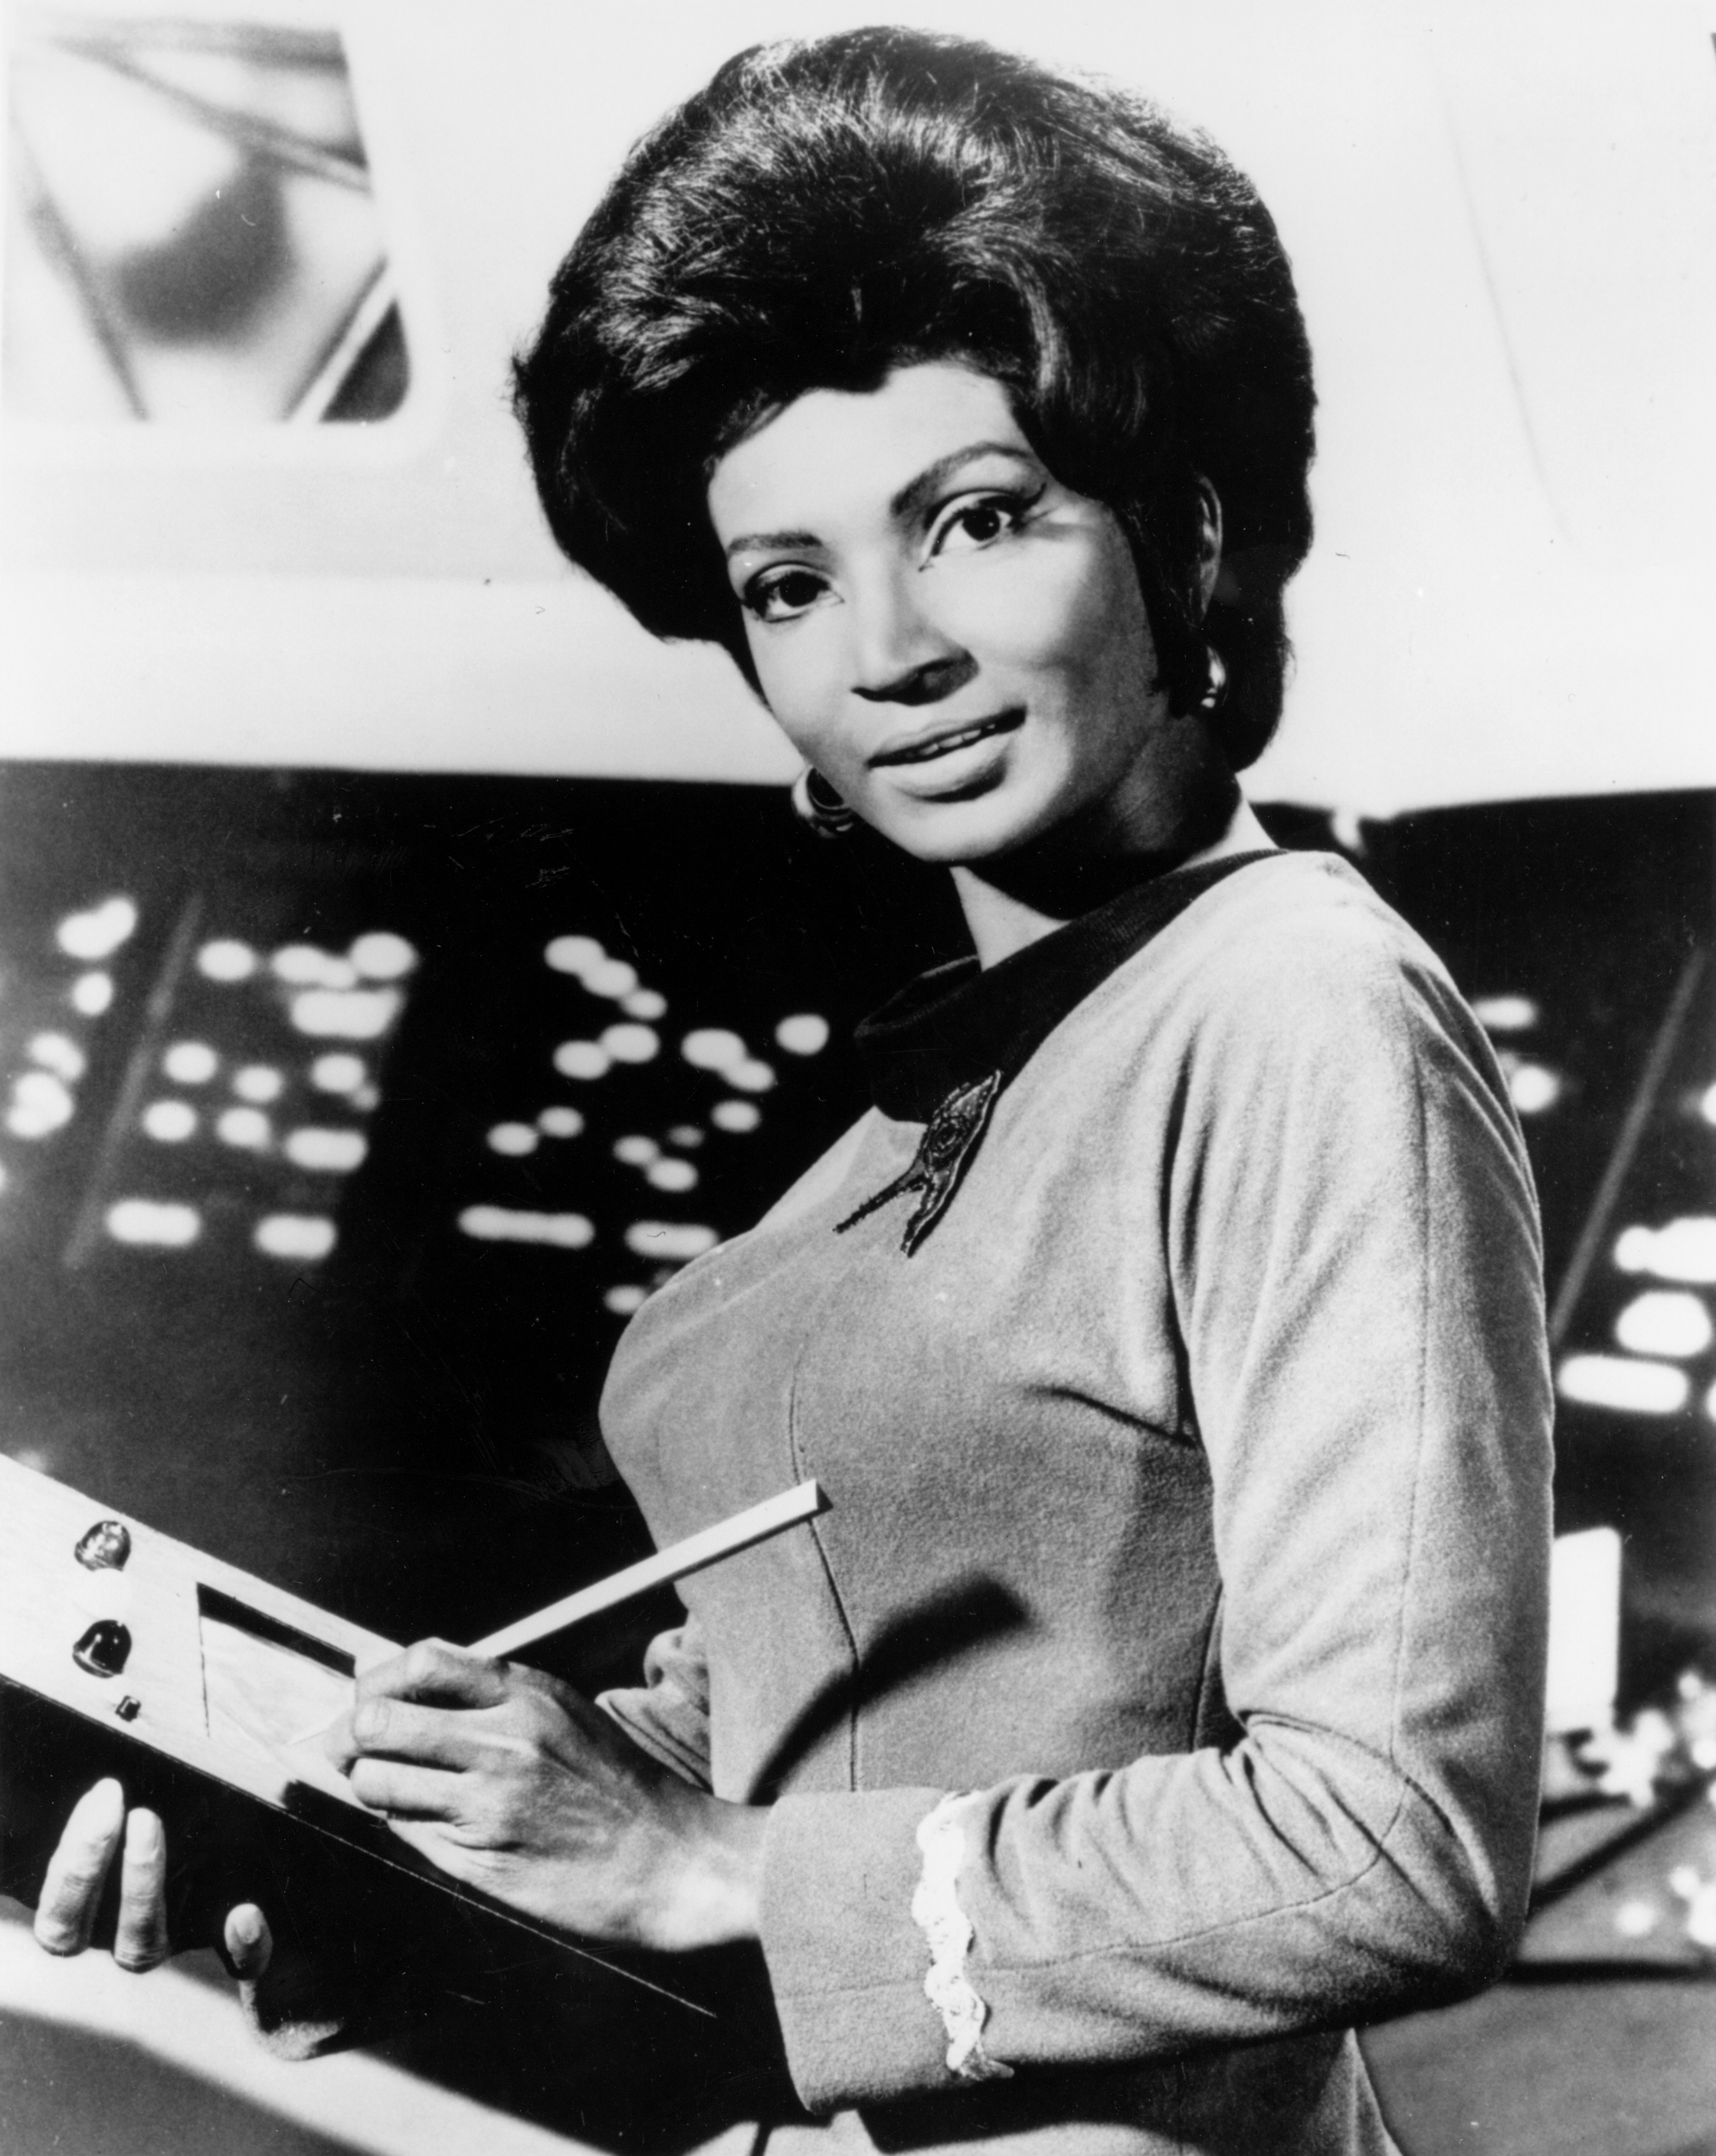 A black and white picture of Nichell Nichols as Uhura on the set of the original Star Trek.